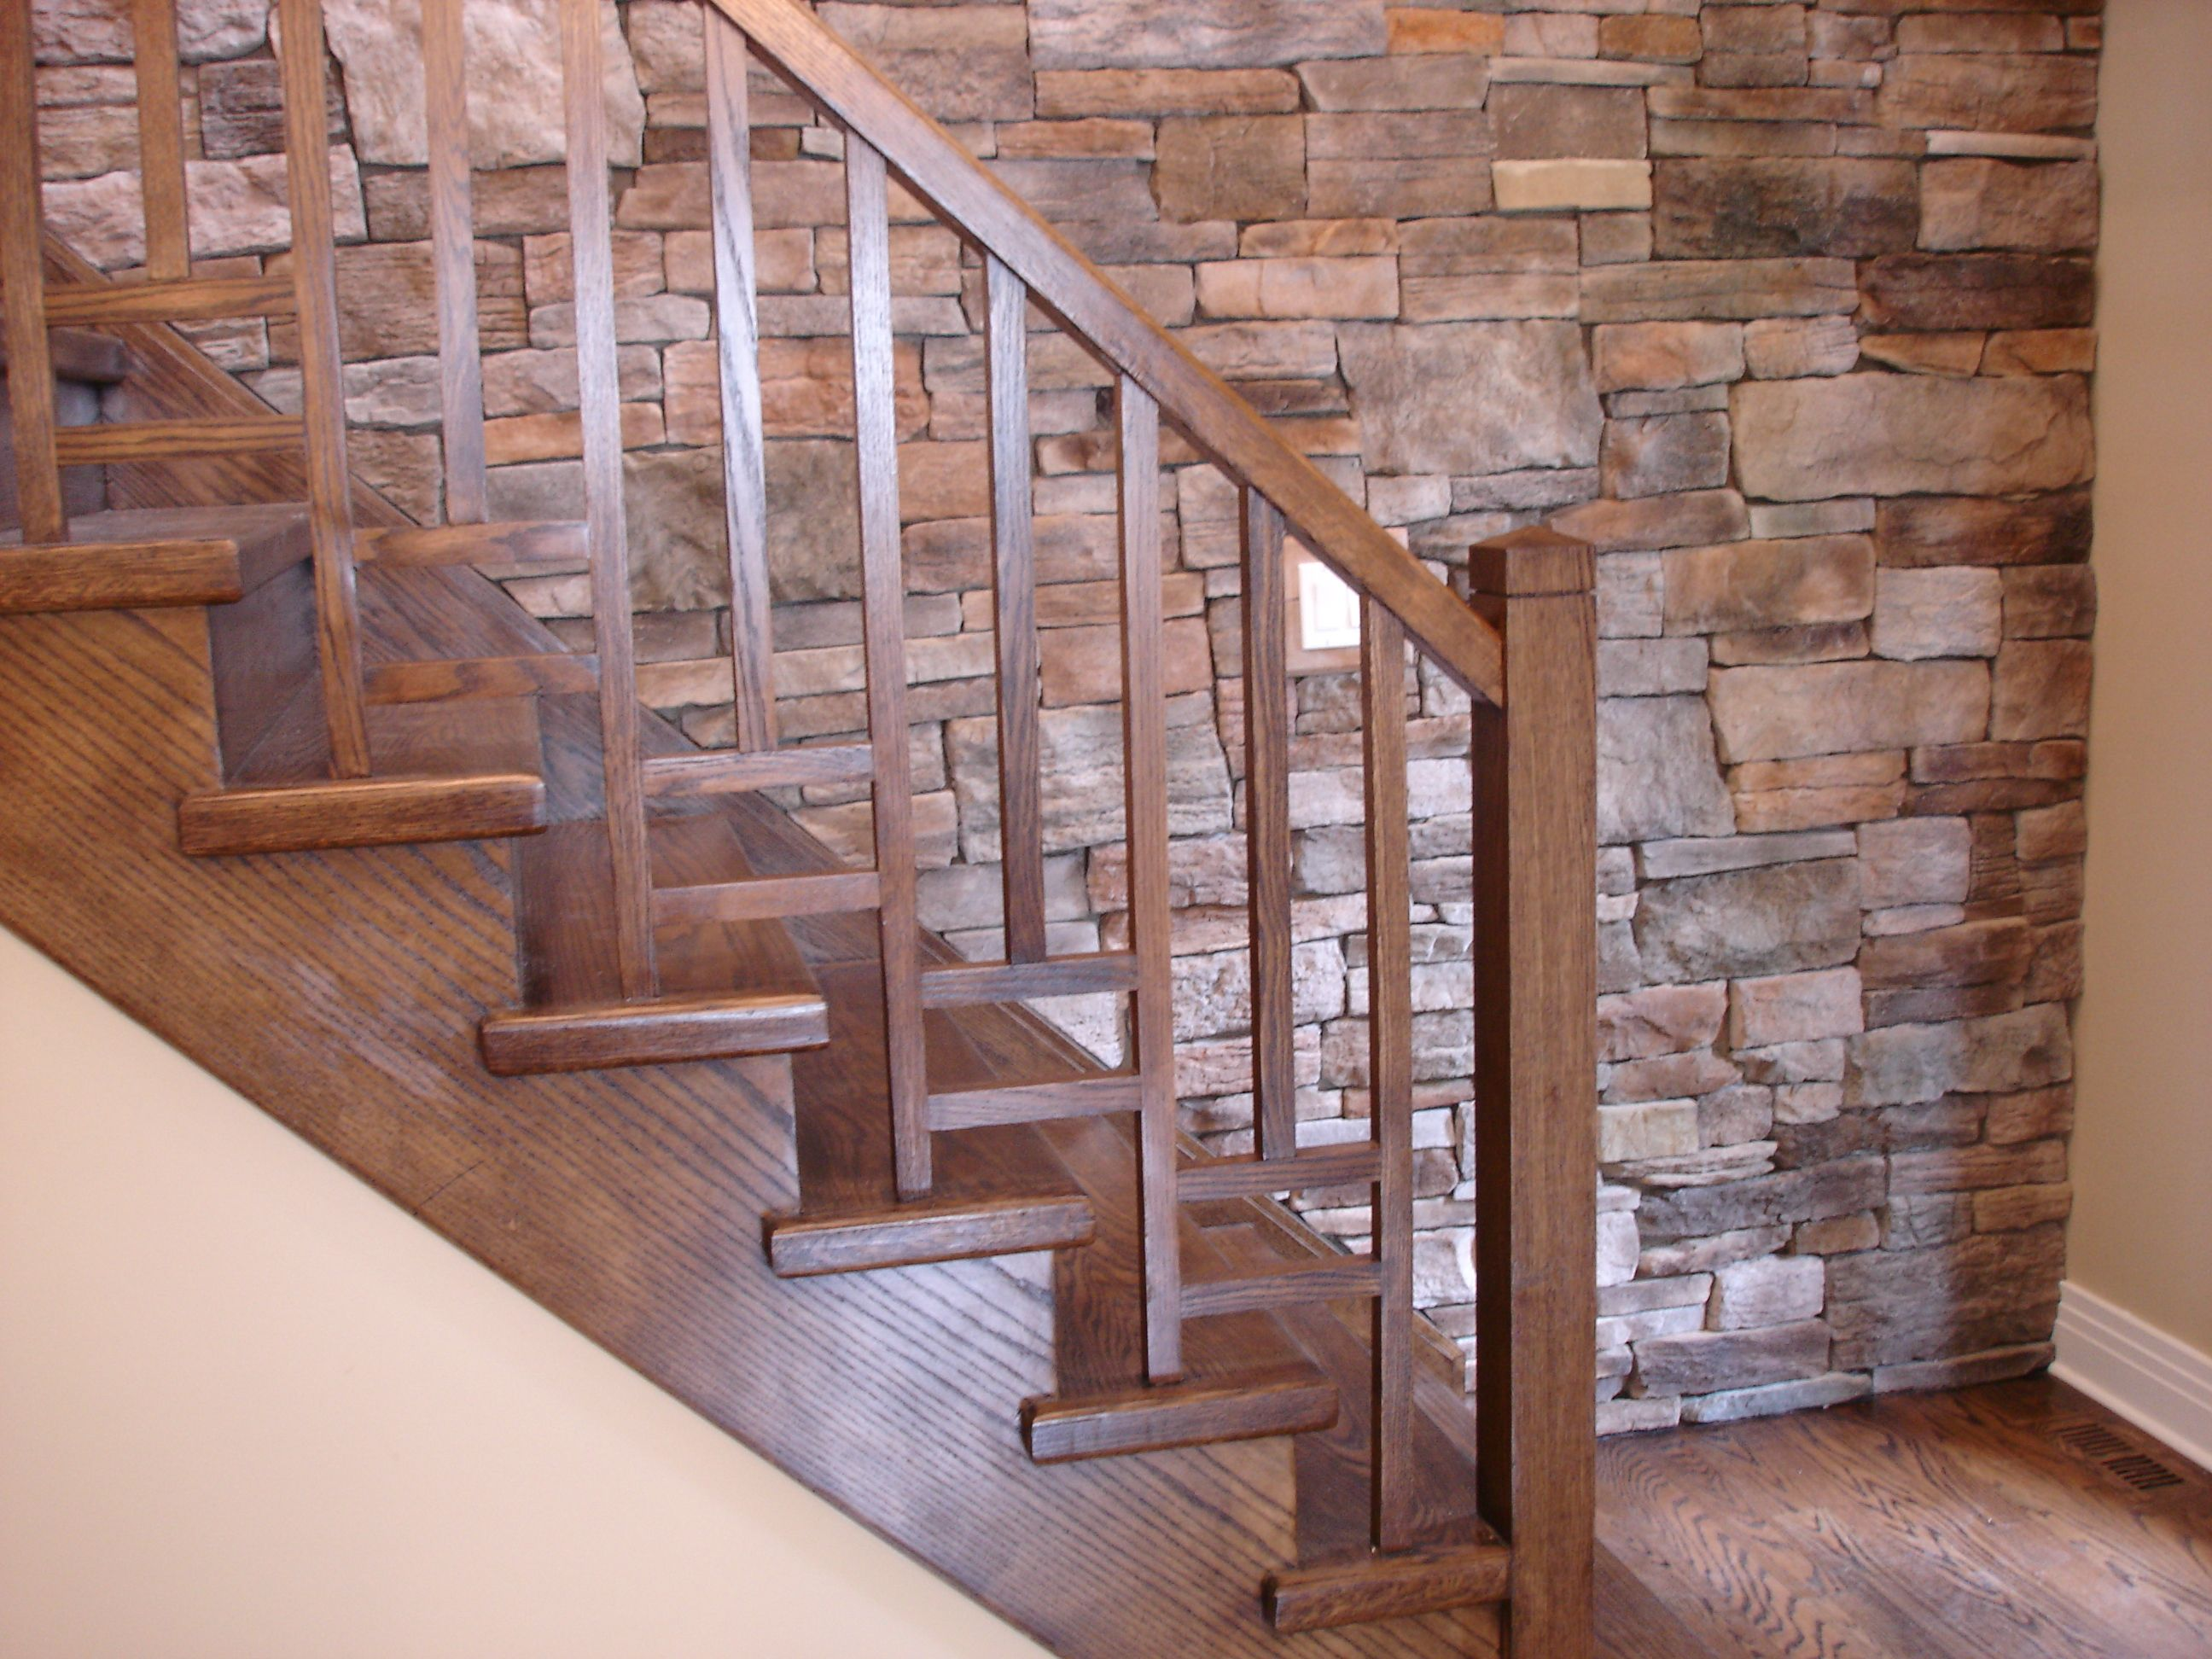 Modern Interior Stair Railings | Mestel brothers stairs rails inc ...